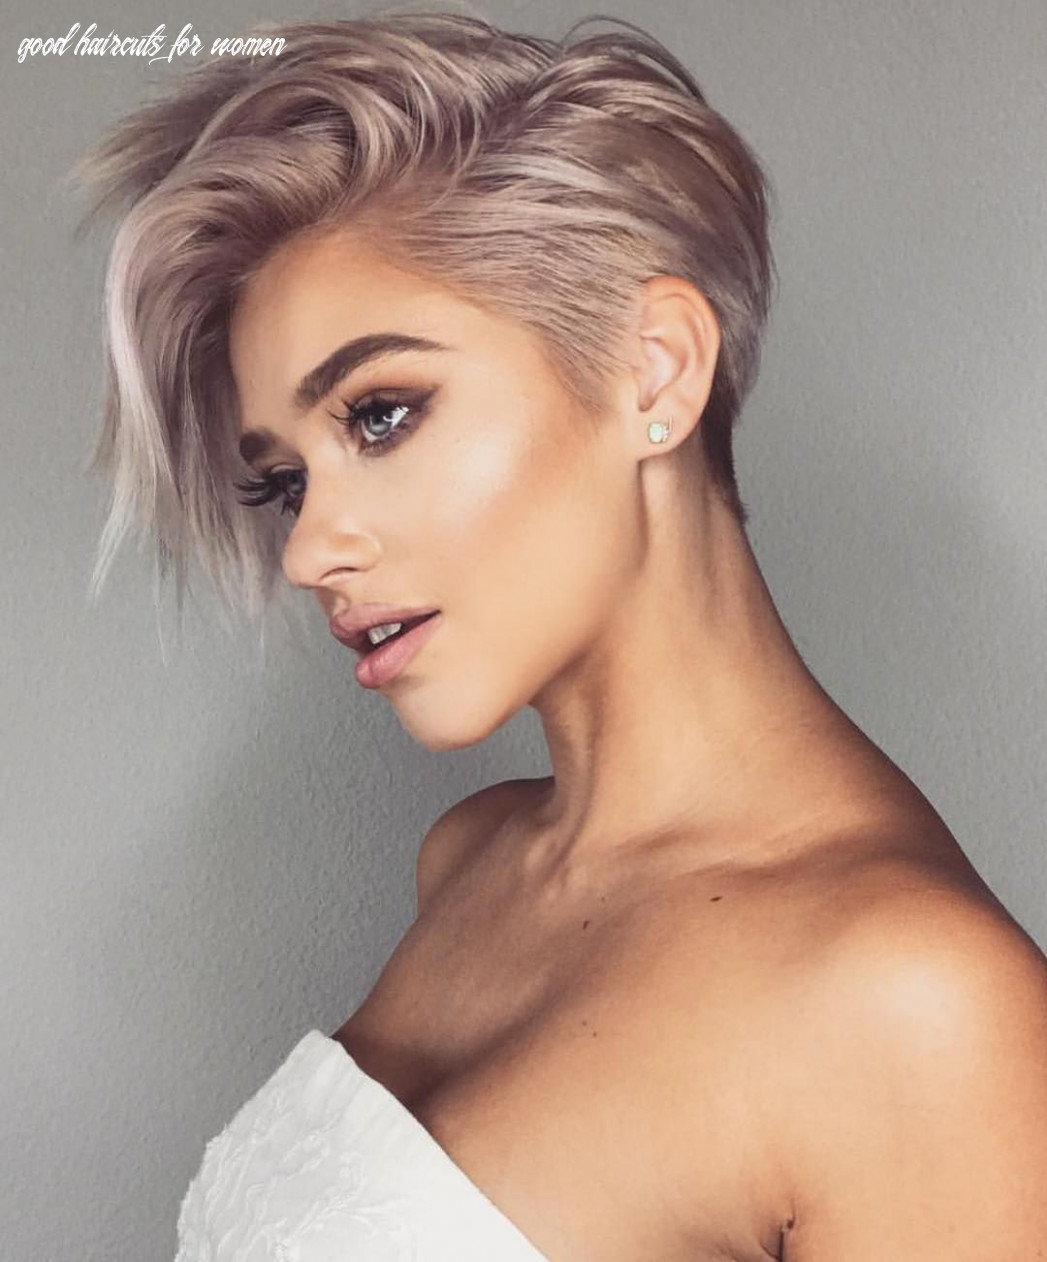 12 best short haircuts for women – eazy glam good haircuts for women